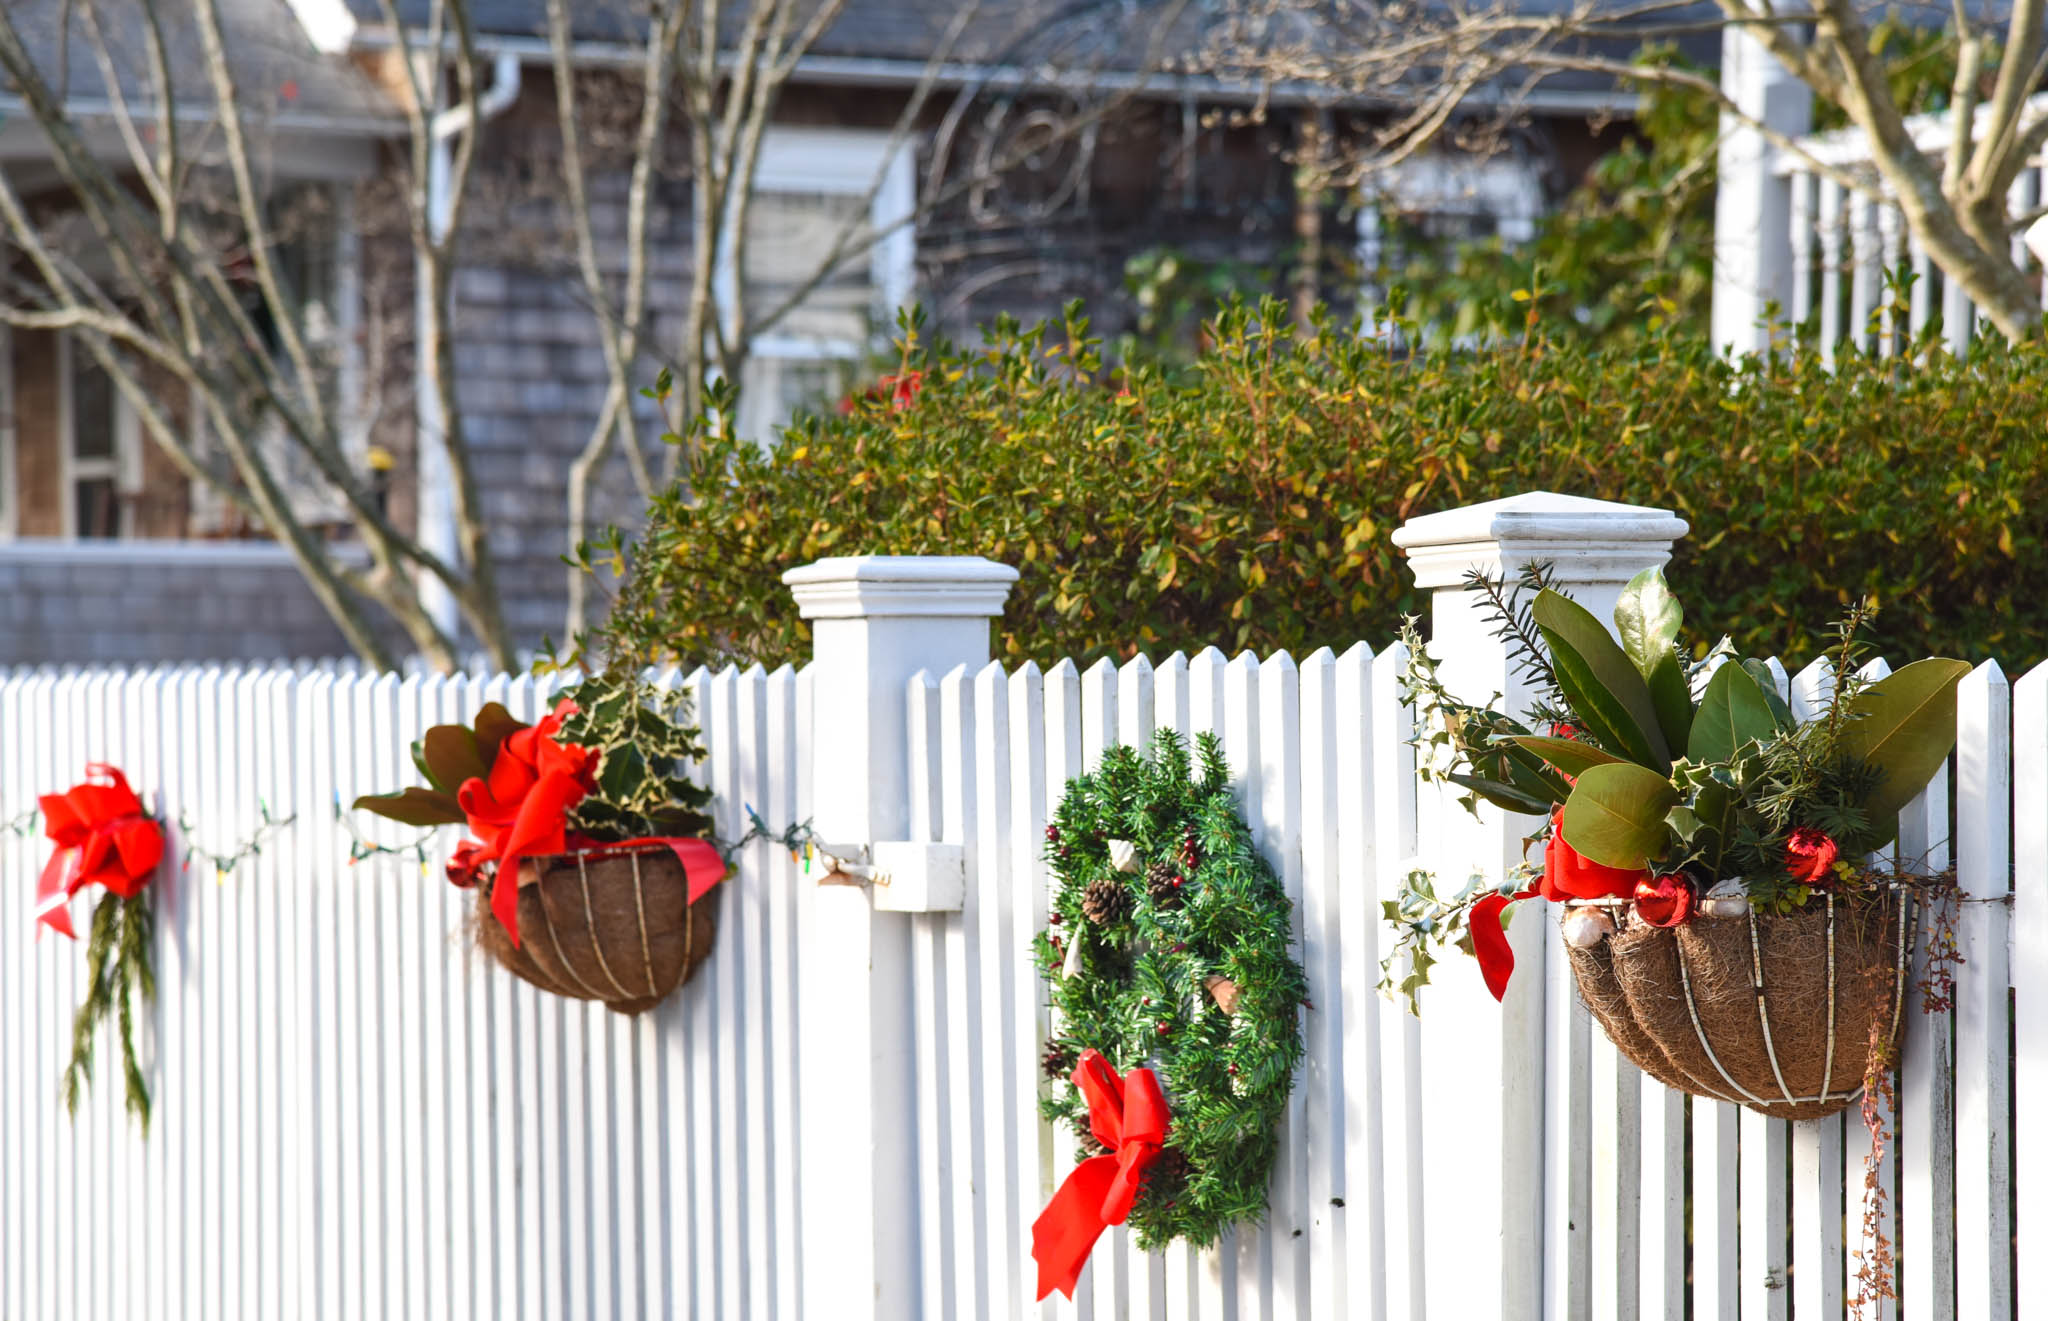 fence with Decorations